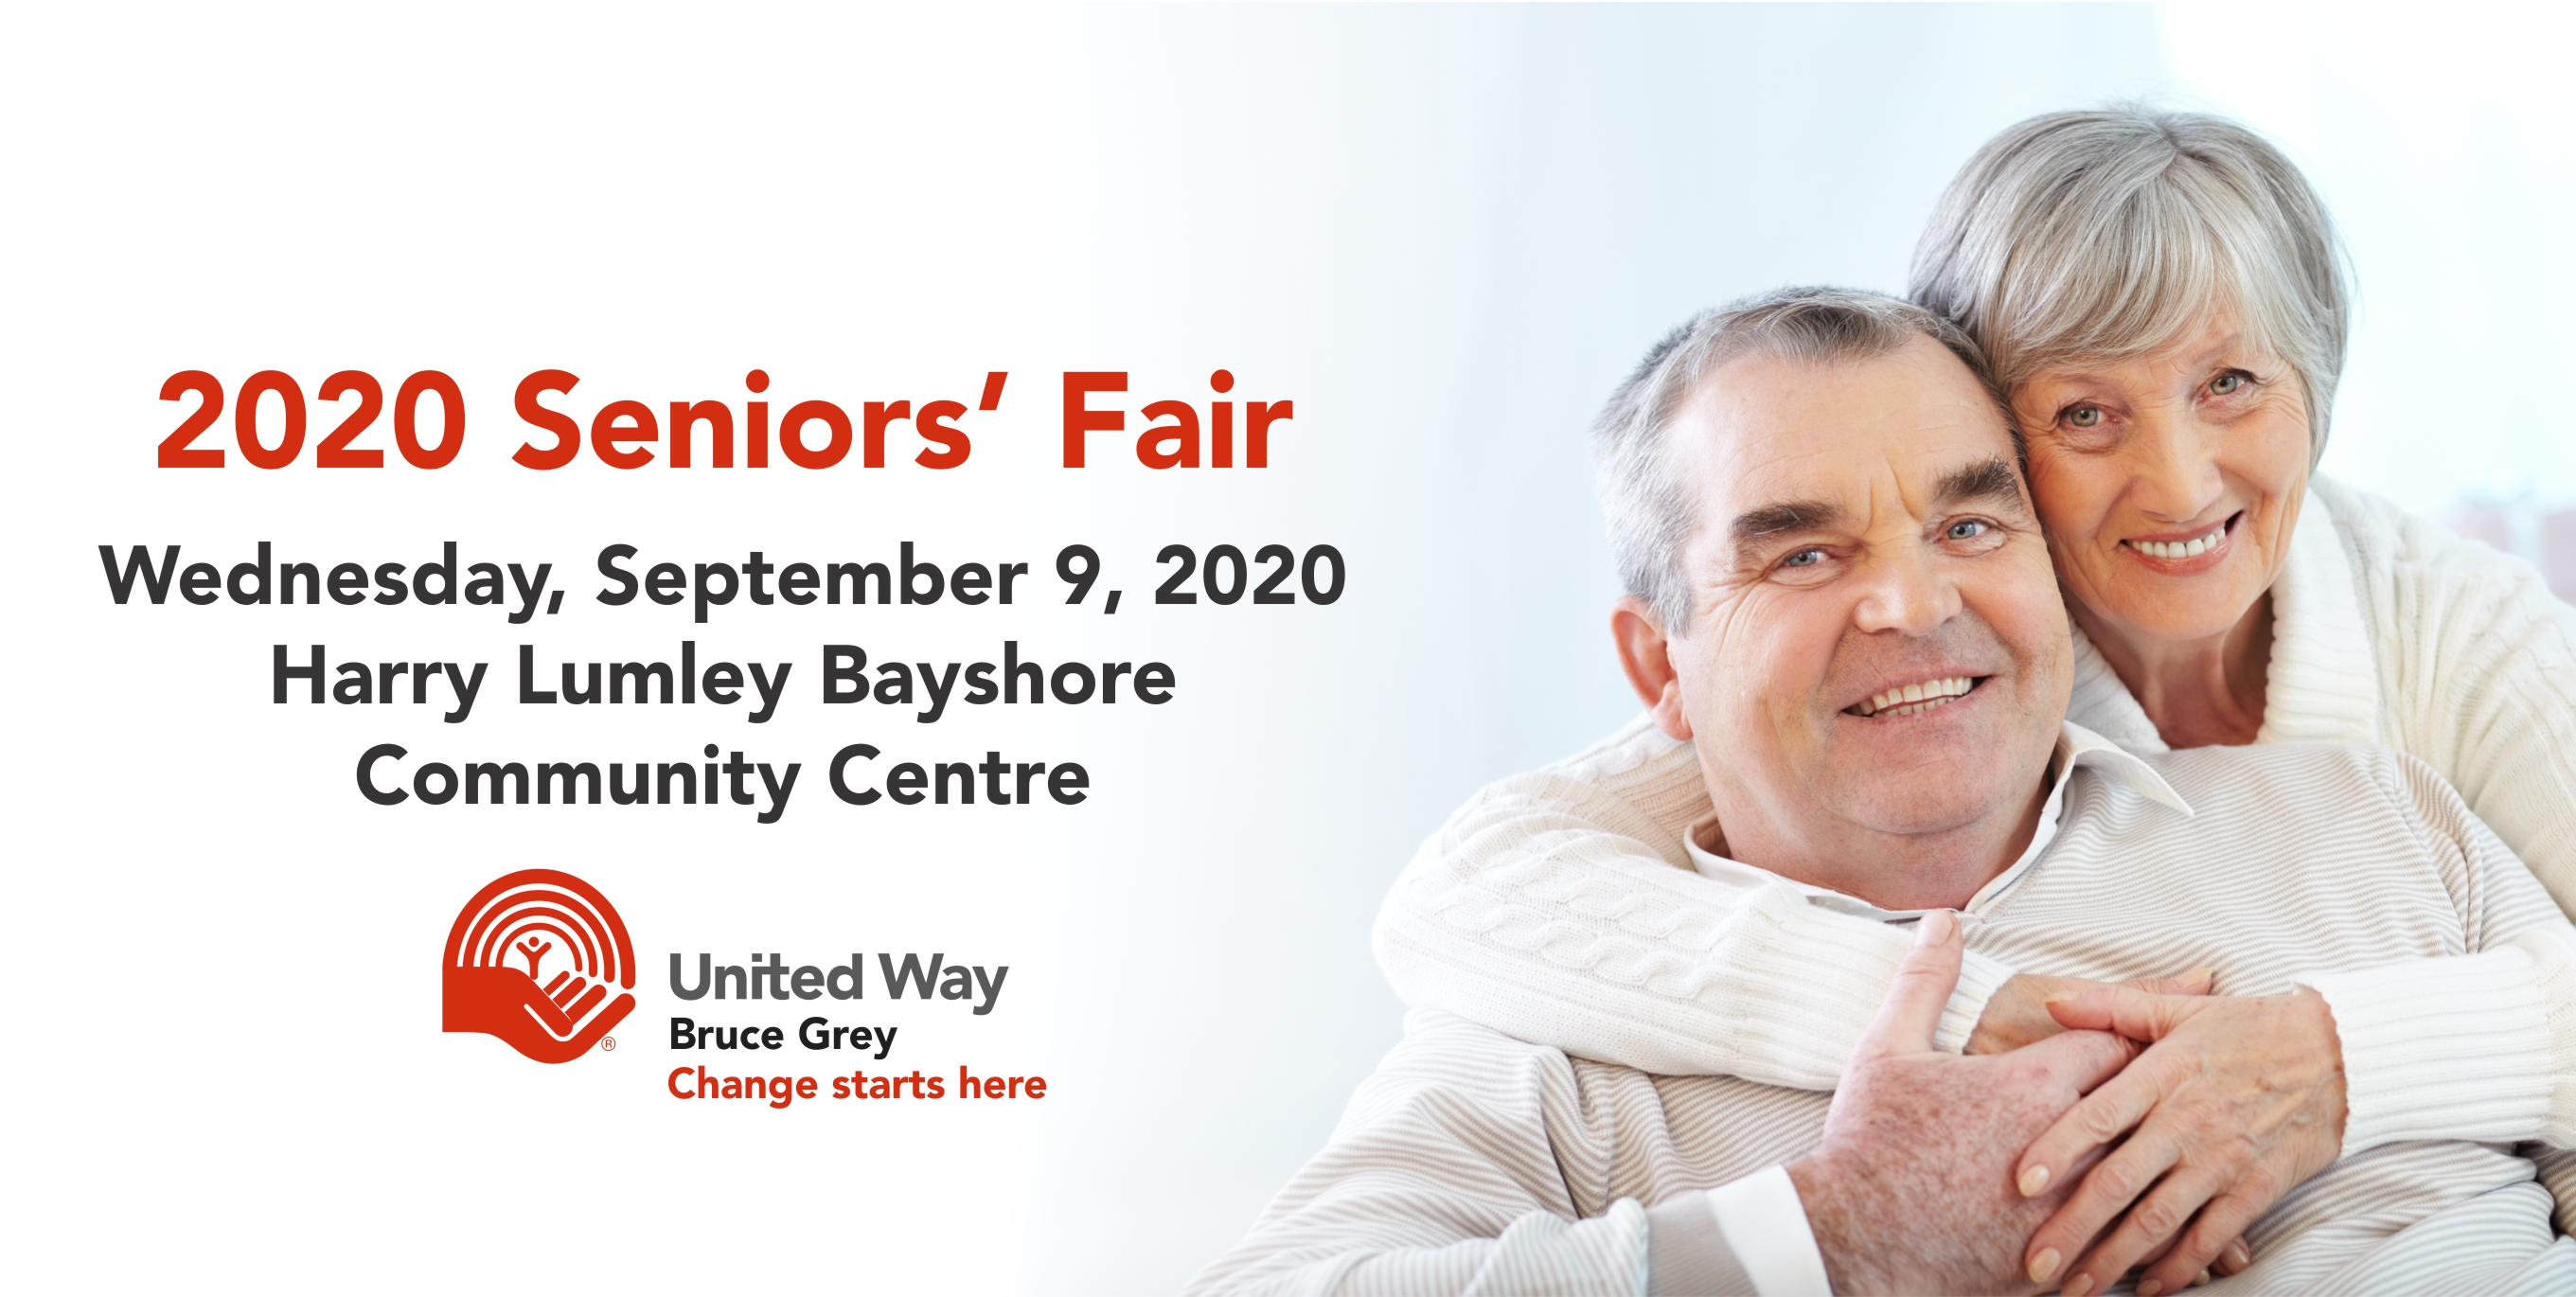 Please join us for our 2020 Seniors' Fair on Wednesday, September 9, 2020